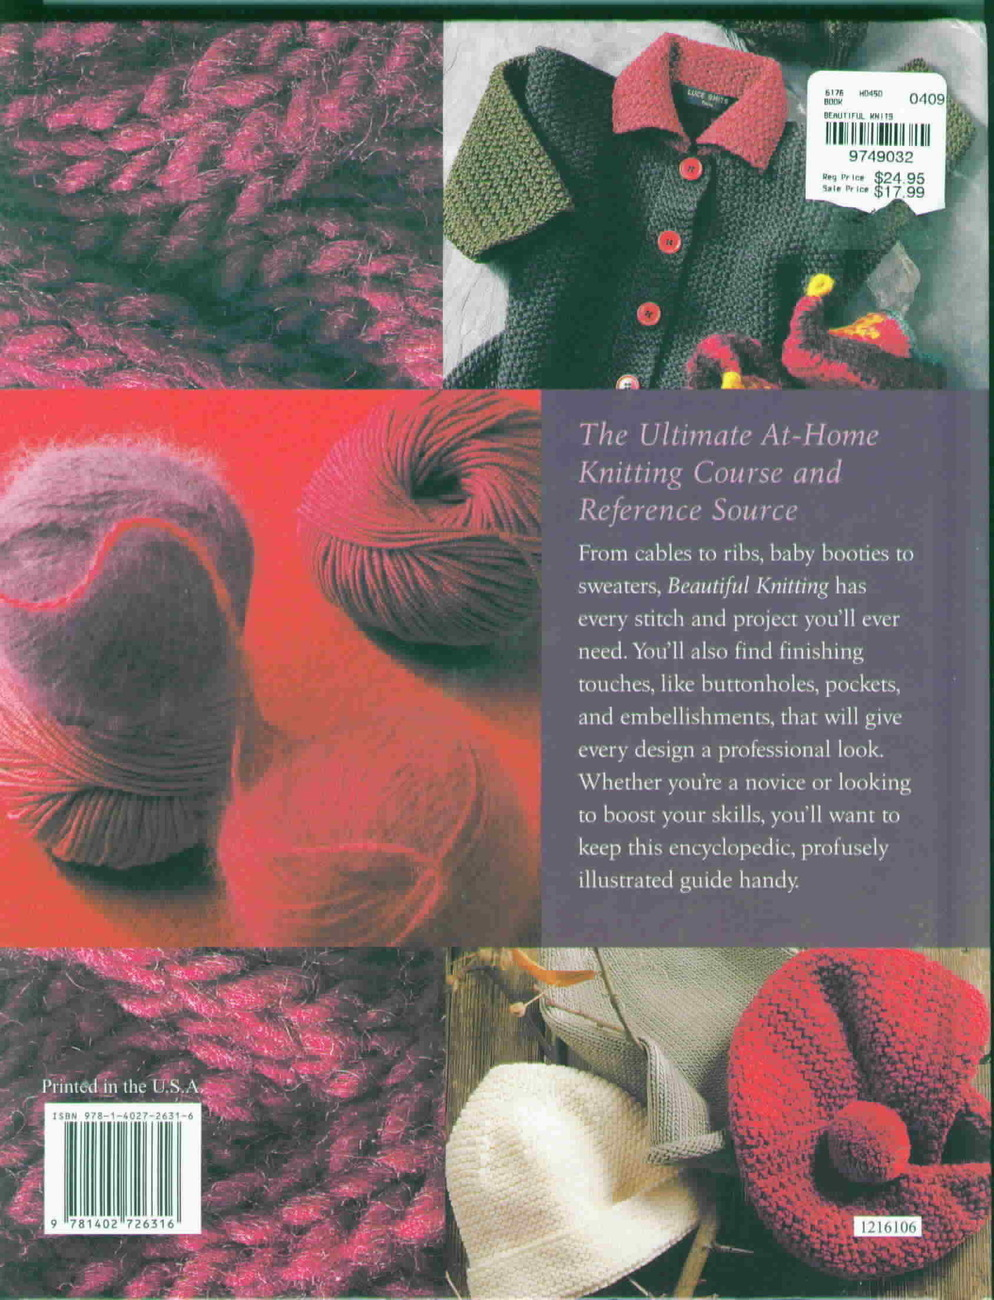 Knitting Techniques Uk : Beautiful knitting techniques and patterns for creating